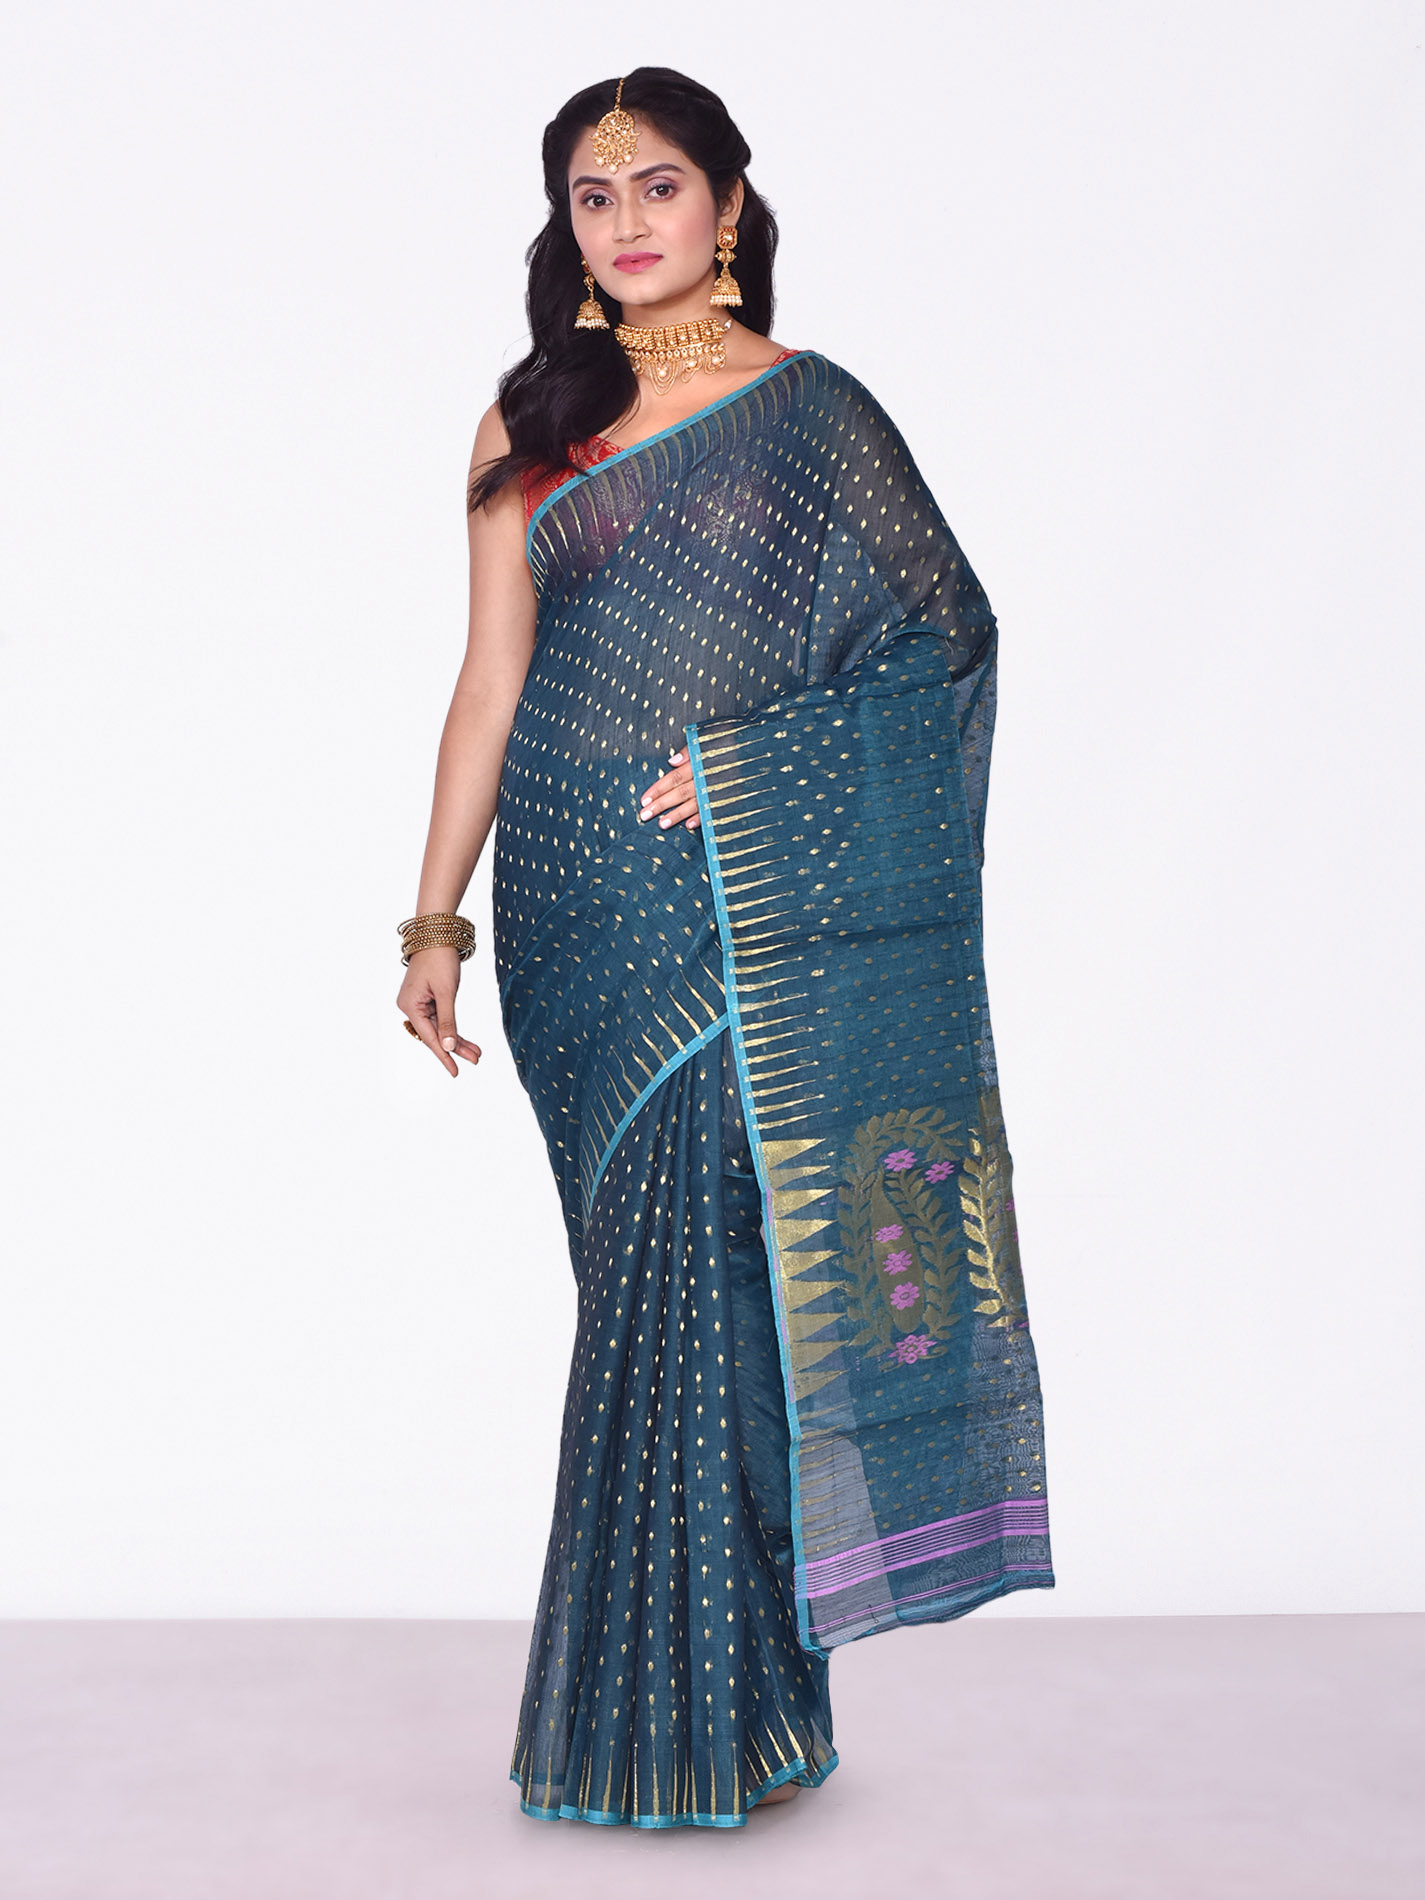 A Comprehensive List of Different Occasions to Wear a Saree